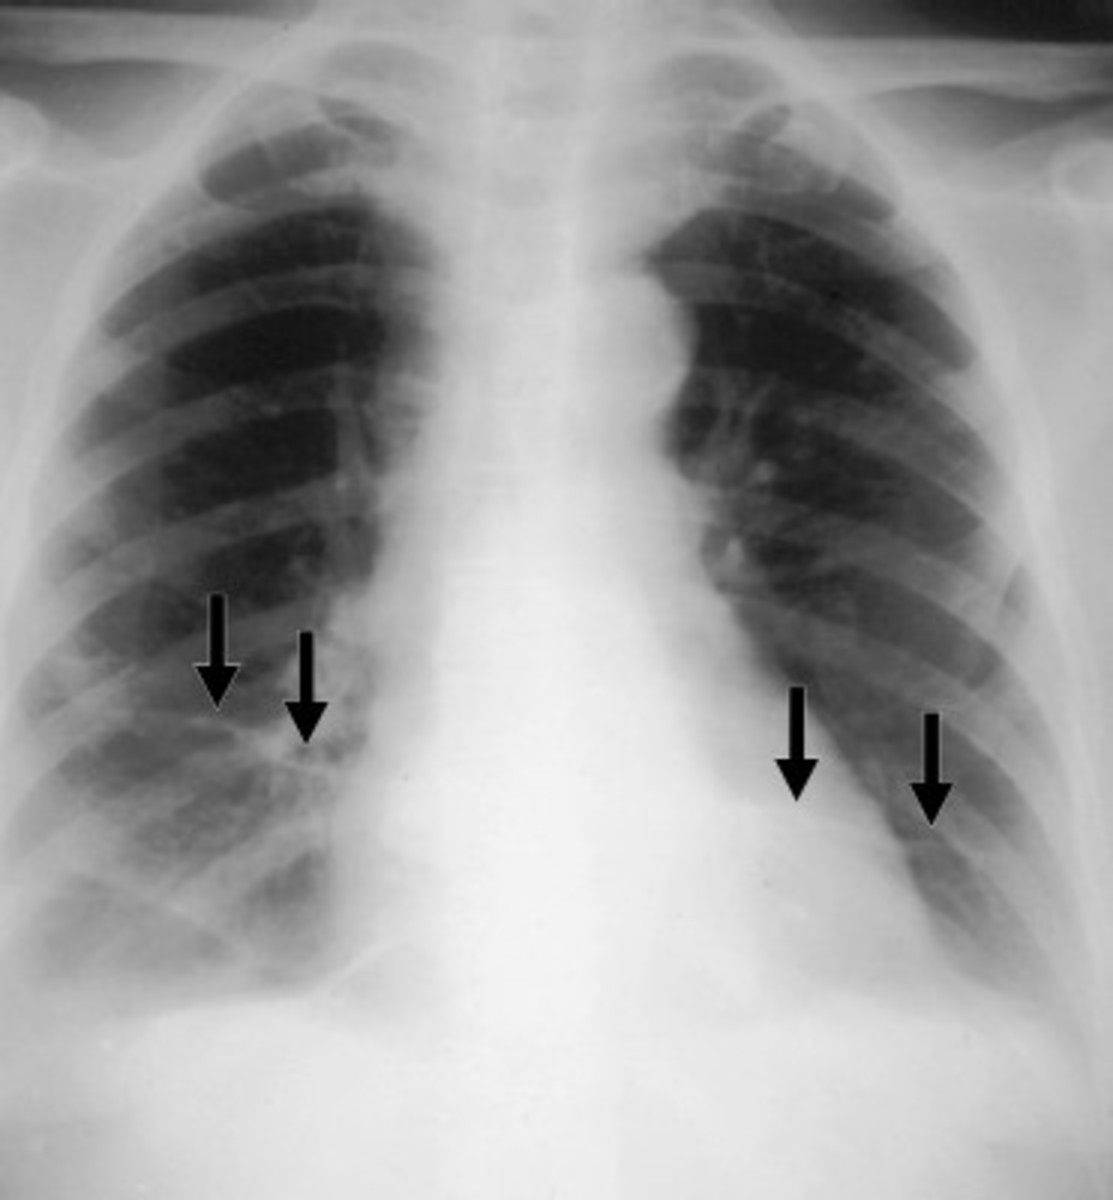 ACD is a genetic disorder. This is known because ACD has been reported in multiple families. There is more than one form of ACD. In some families, a form of ACD known as alveolar capillary dysplasia with misalignment of pulmonary veins (ACD/MPV) has